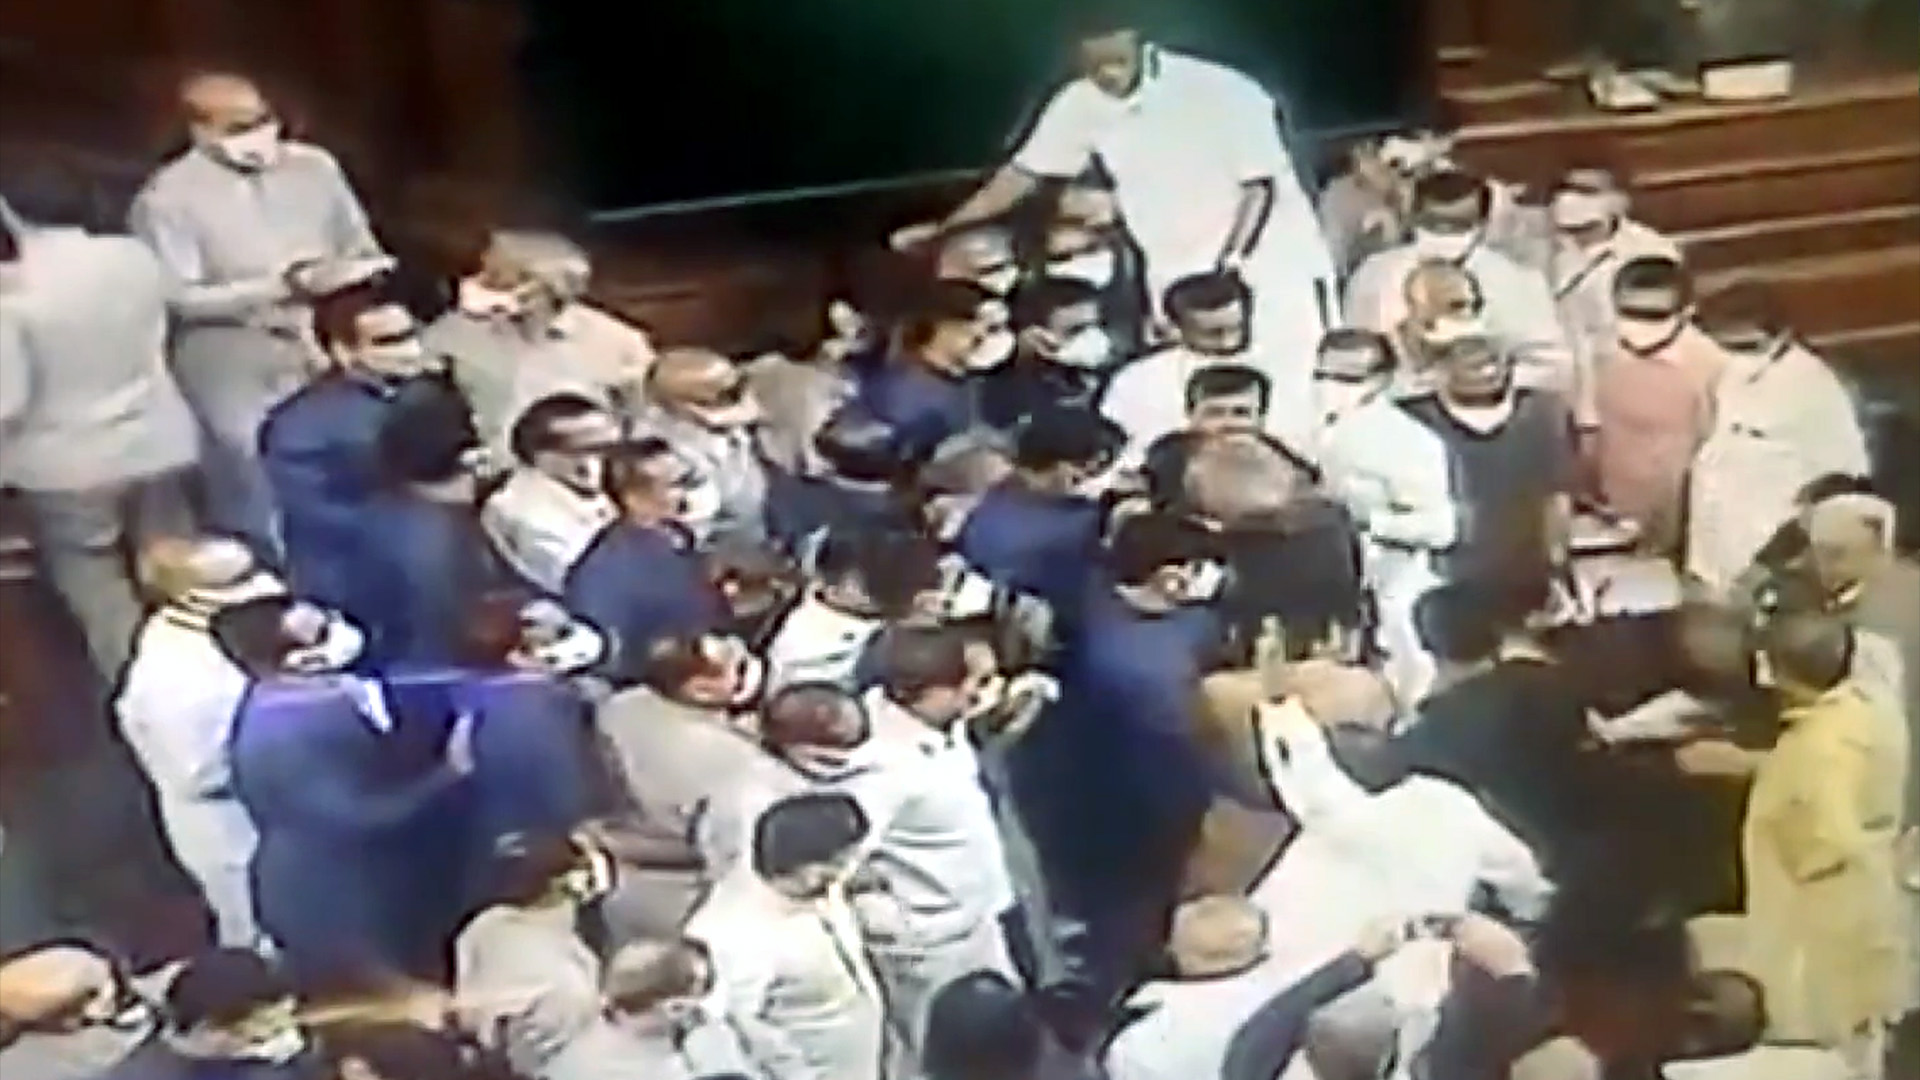 VIDEO: Stormy Scenes Play Out At Indian Parliament Upper House